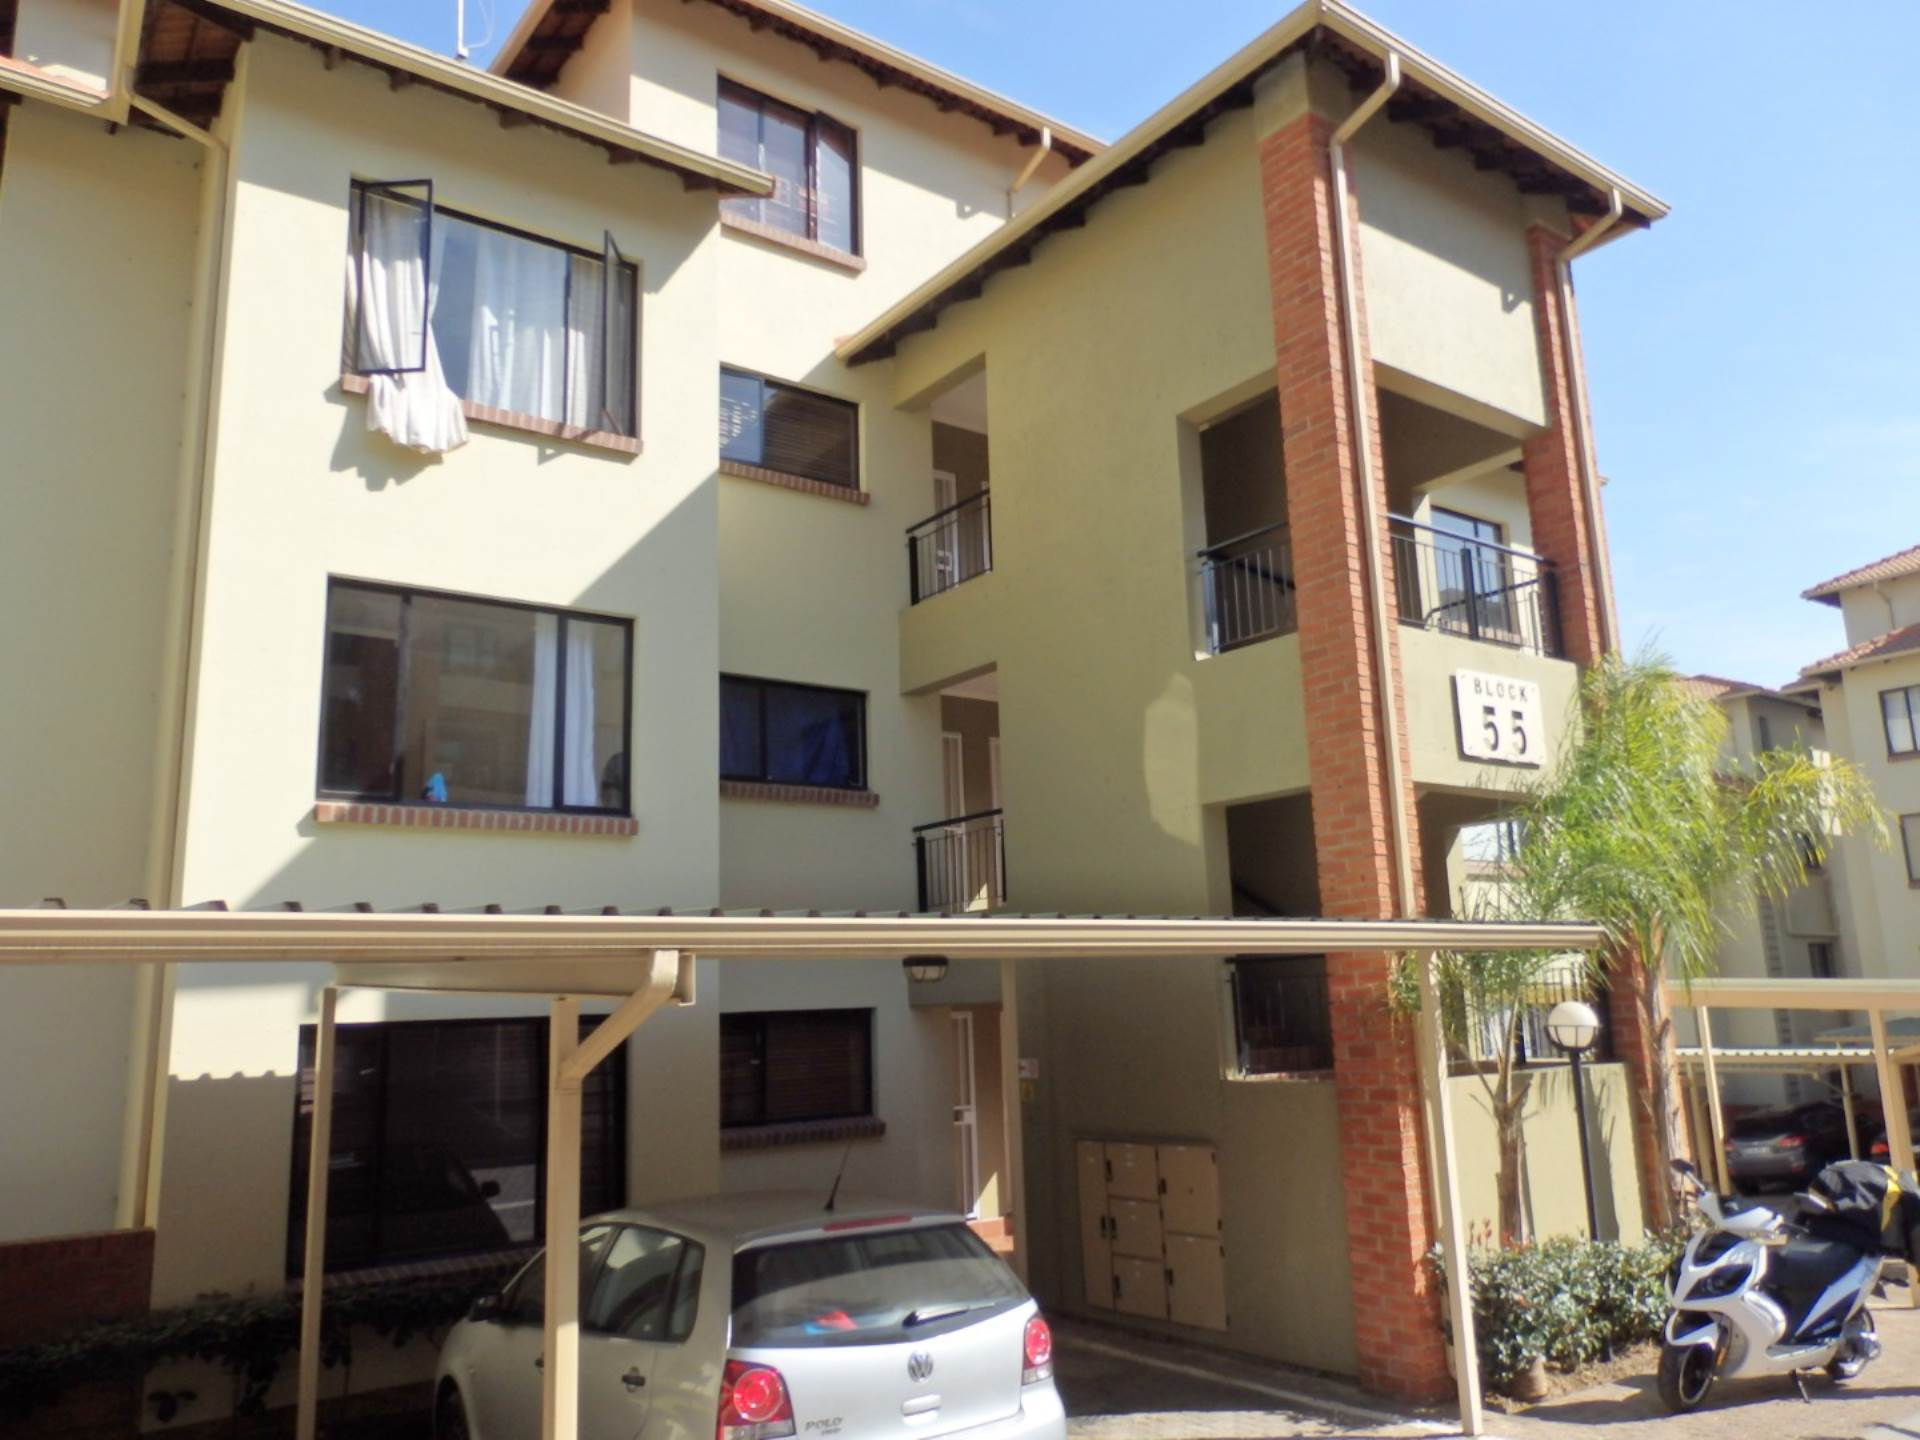 2 BedroomTownhouse For Sale In Sunninghill